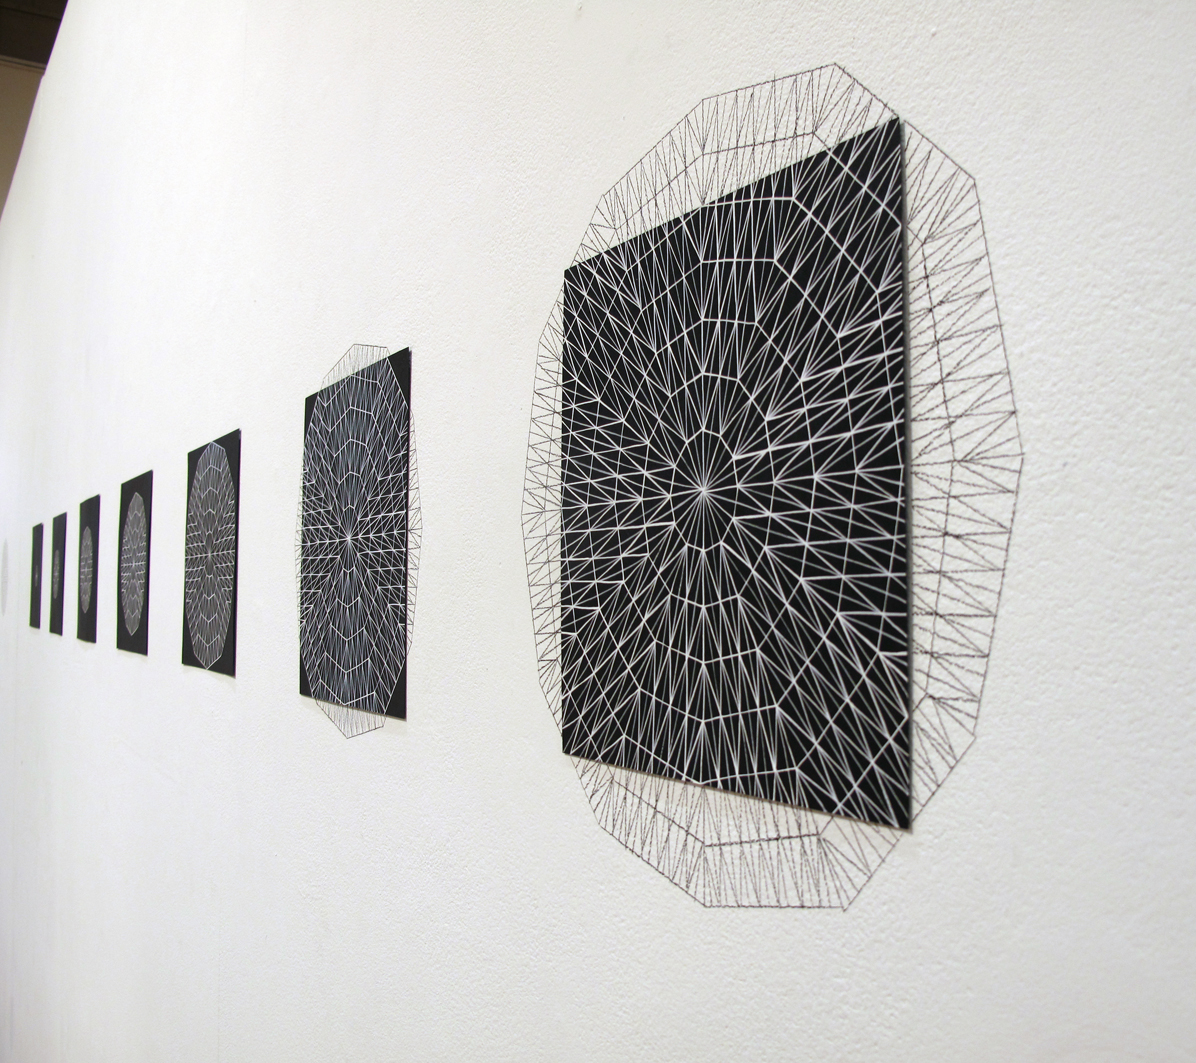 Julie Brooke Exhibition The Principle of Continuity